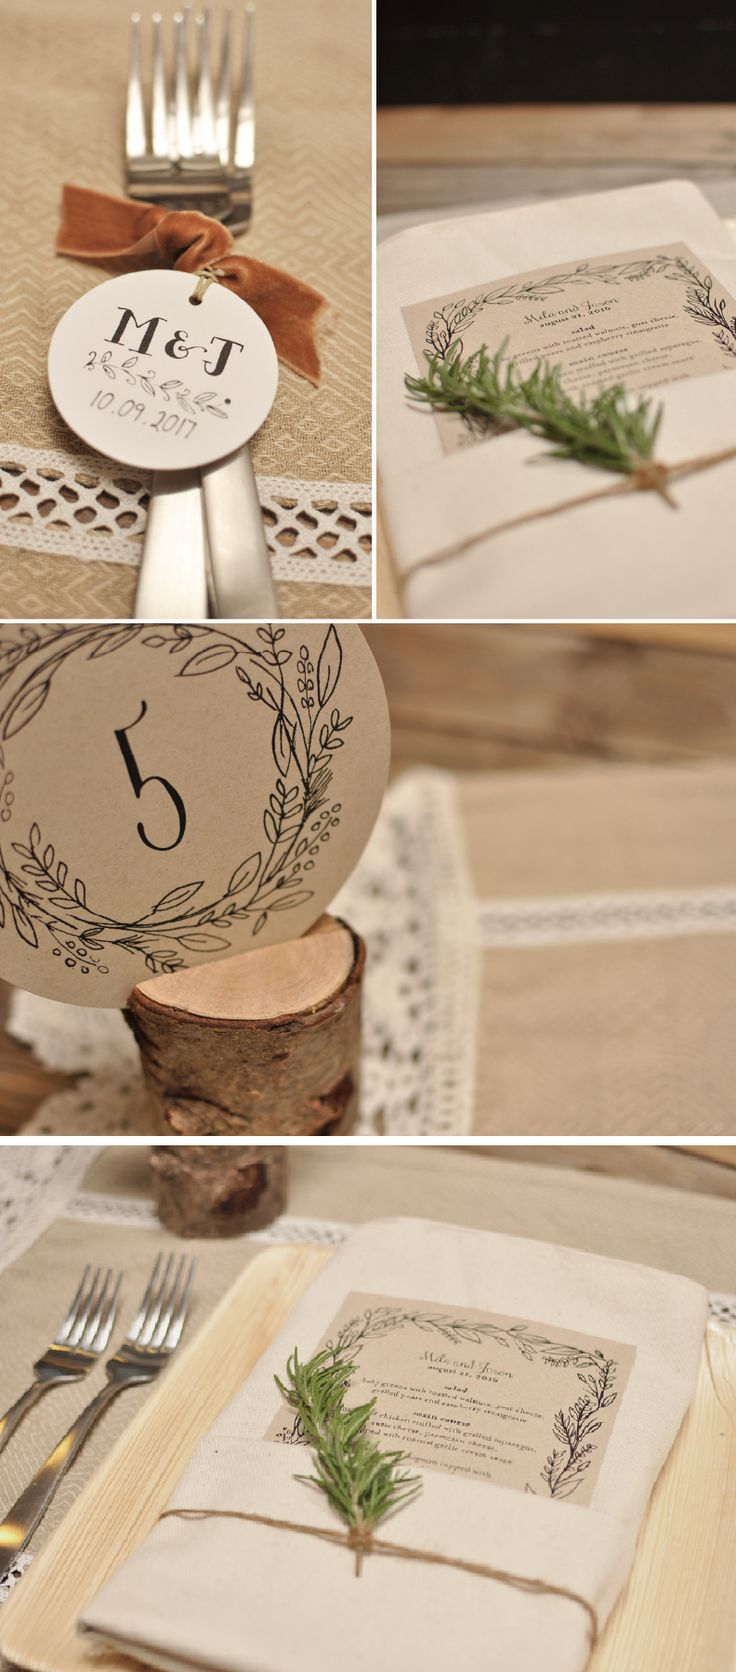 214 Best Weddings Favors Seating Images On Pinterest Marriage